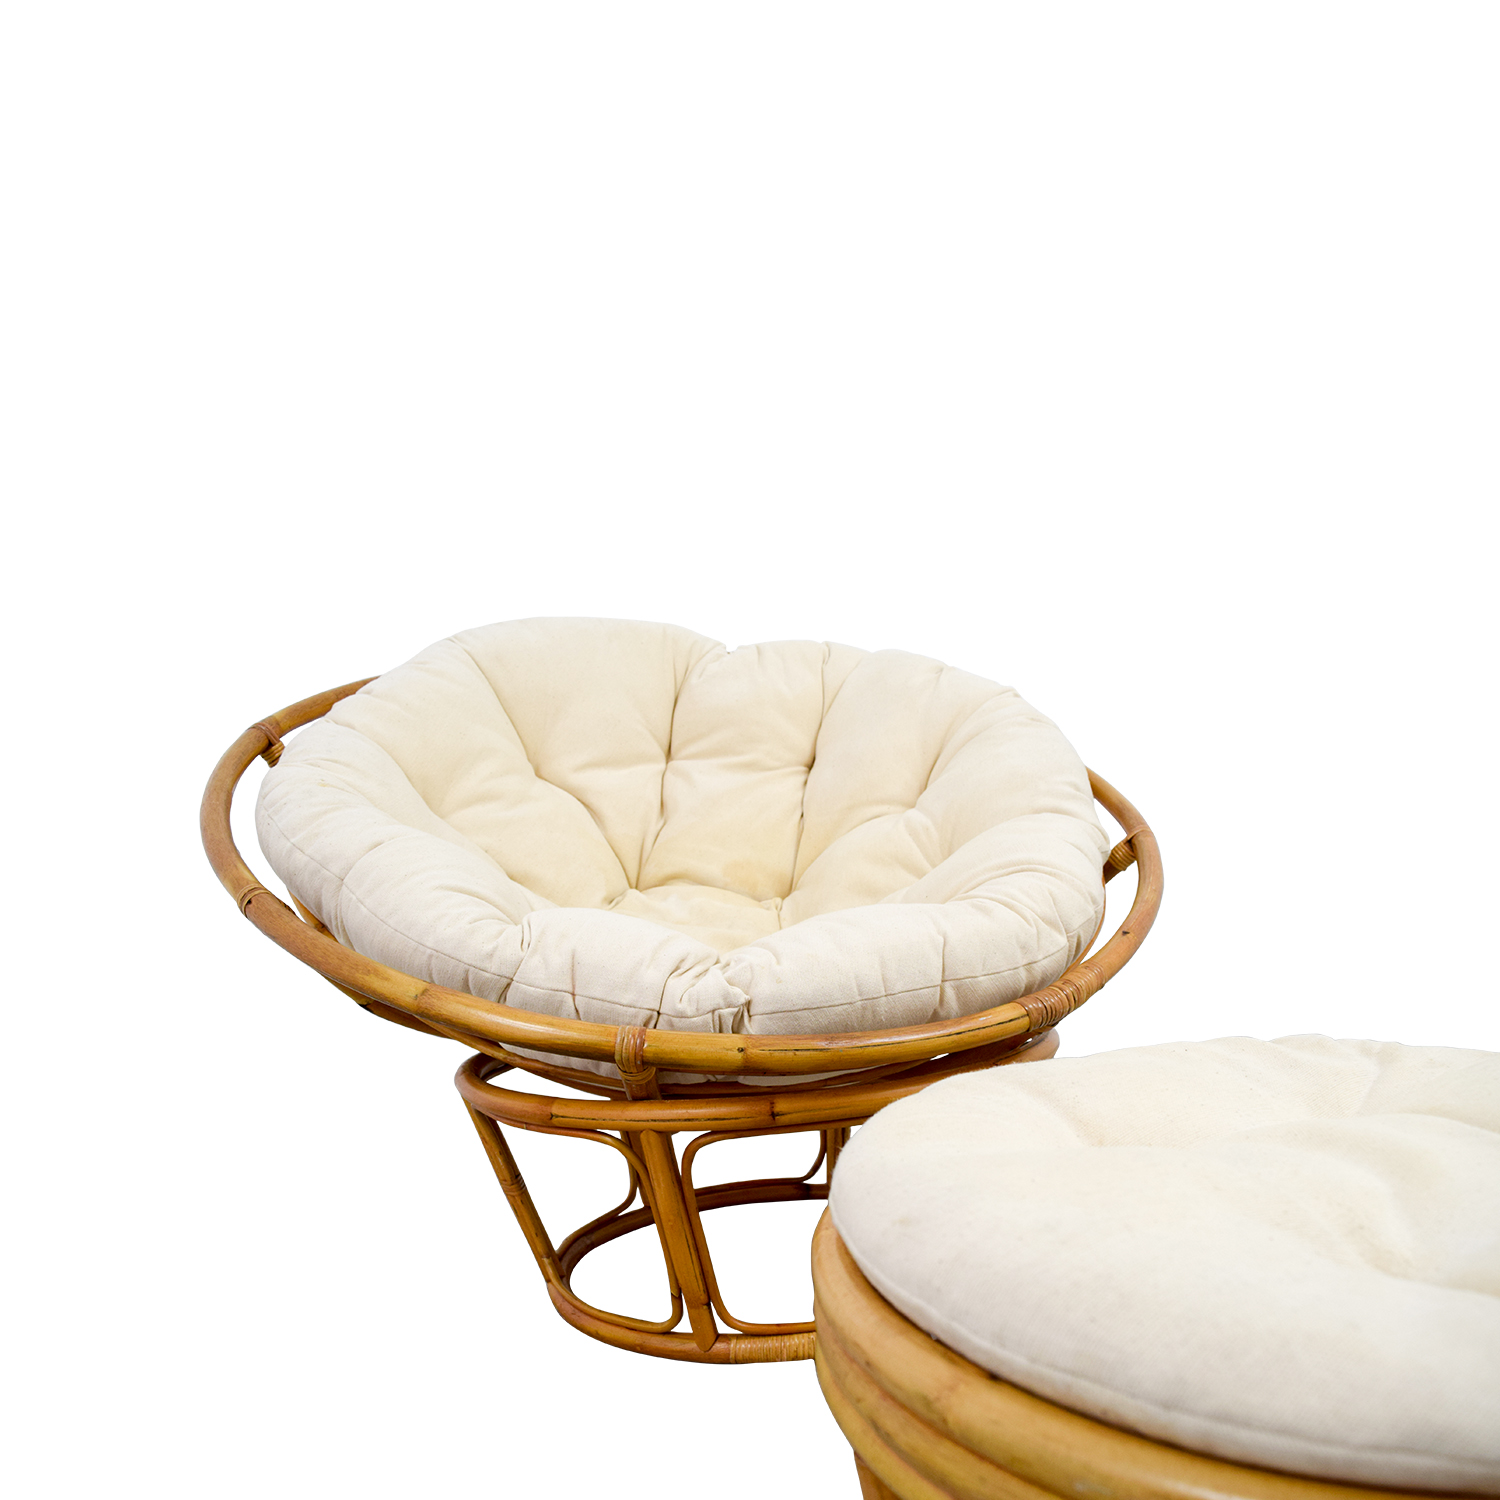 papasan chair ottoman target dining tables and chairs 68 off pier 1 with footstool